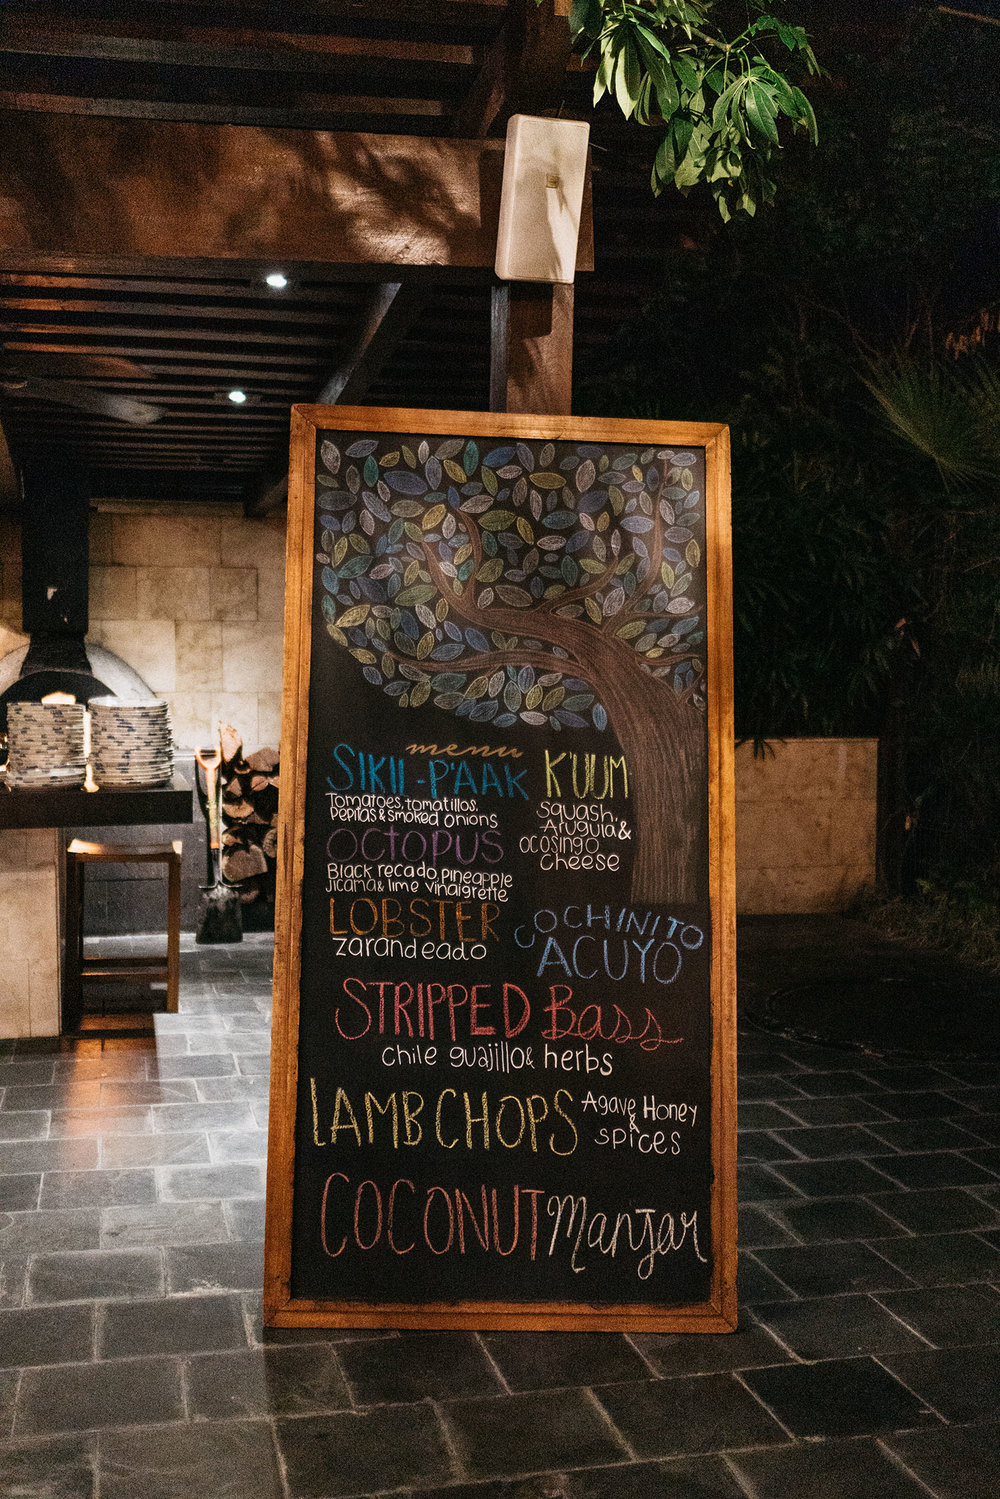 A special family-style dinner at  La Ceiba Garden & Kitchen , which pays homage to authentic Mayan cuisine and heritage.